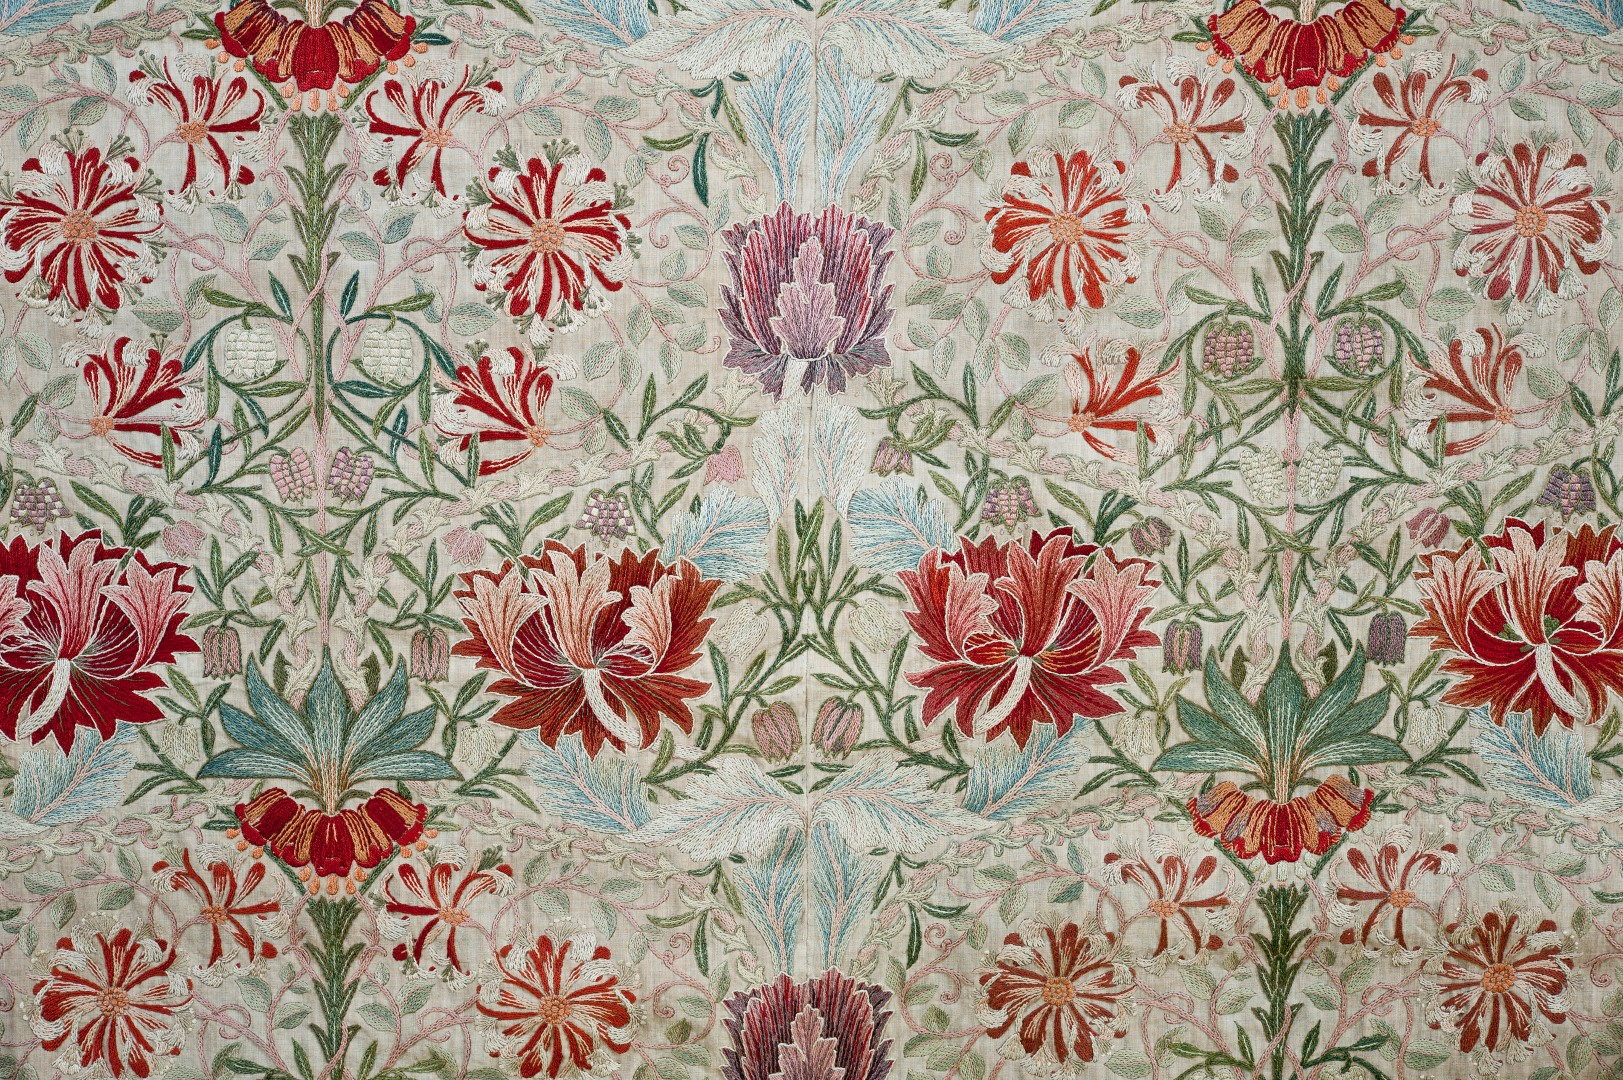 William Morris, Honeysuckle, útsaumur, ca.1876, William Morris Gallery, London.